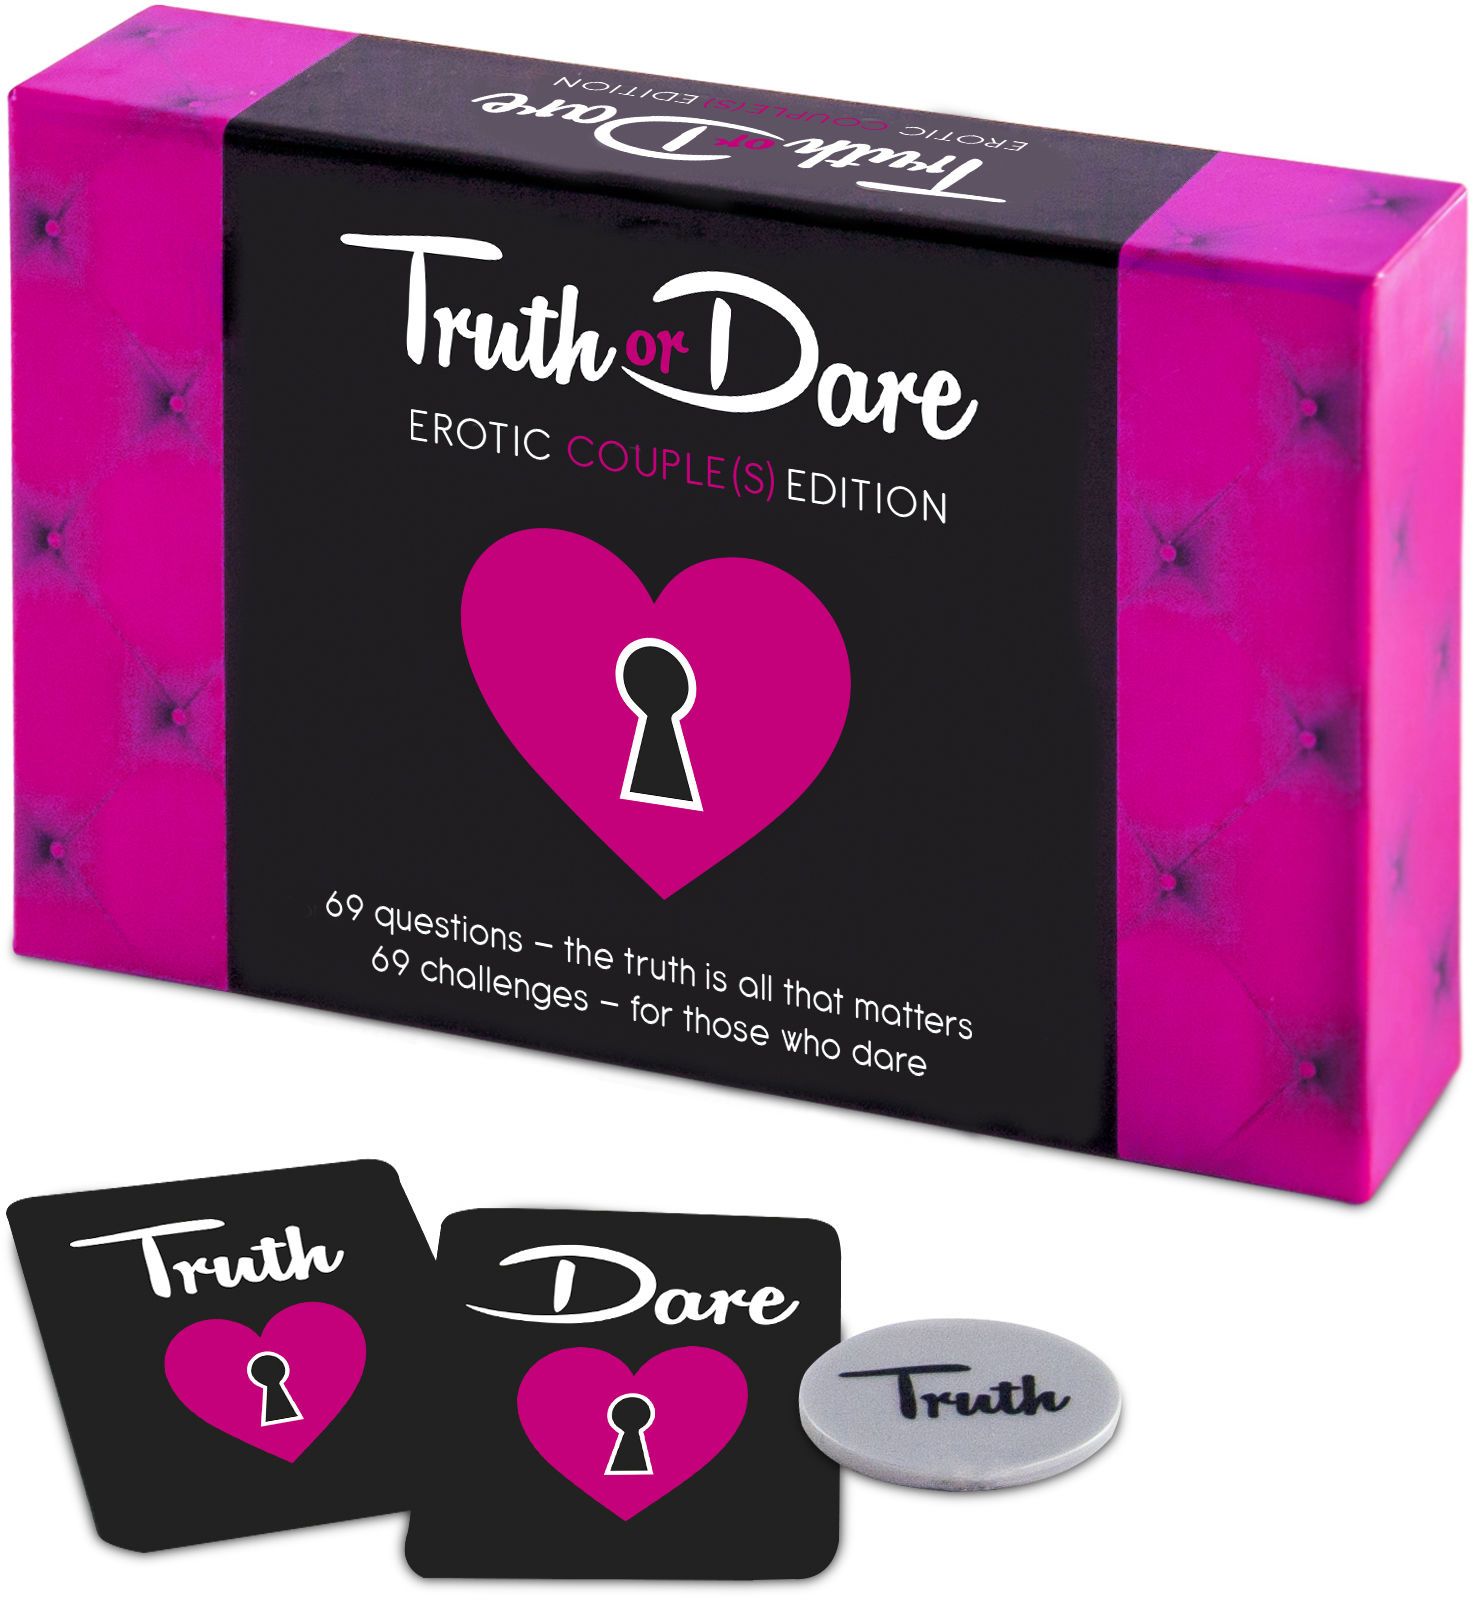 Tease & Please Truth or Dare Erotic Couple(s) Edition EN - The English Version Of Erotic Game